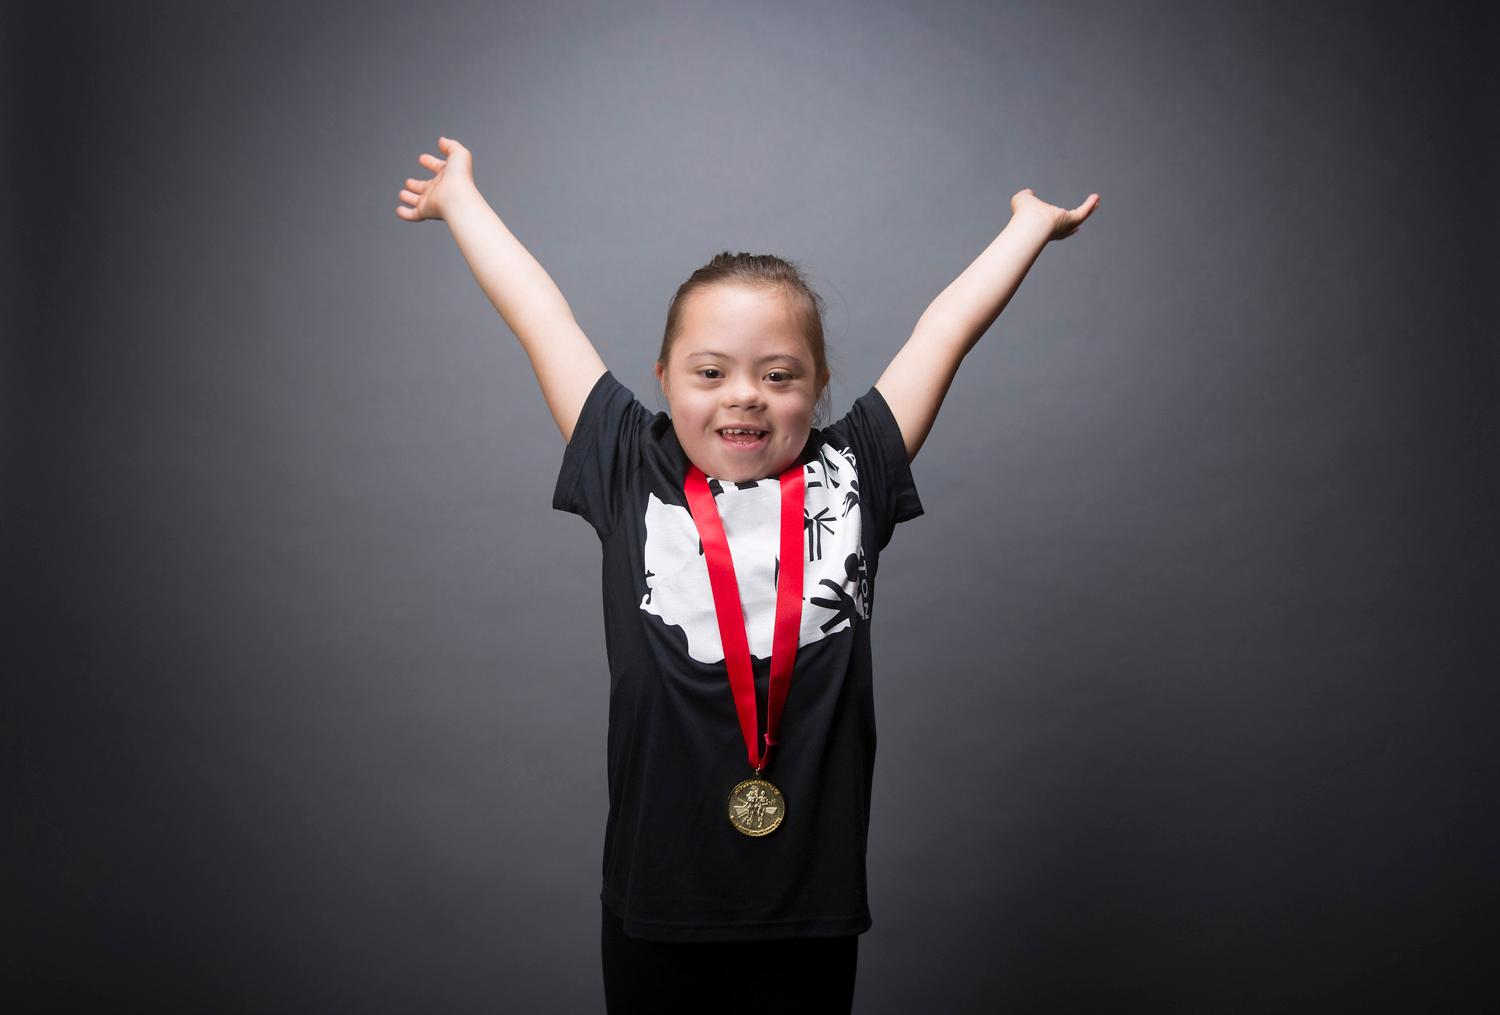 Introducing Frannie Ronan! Frannie will be competing in gymnastics. The Special Olympics USA will take place in Seattle from July 1-6, with a grand opening ceremony and Parade of Athletes and the lighting of the Special Olympics Flame of Hope. (Sy Bean / Seattle Refined)